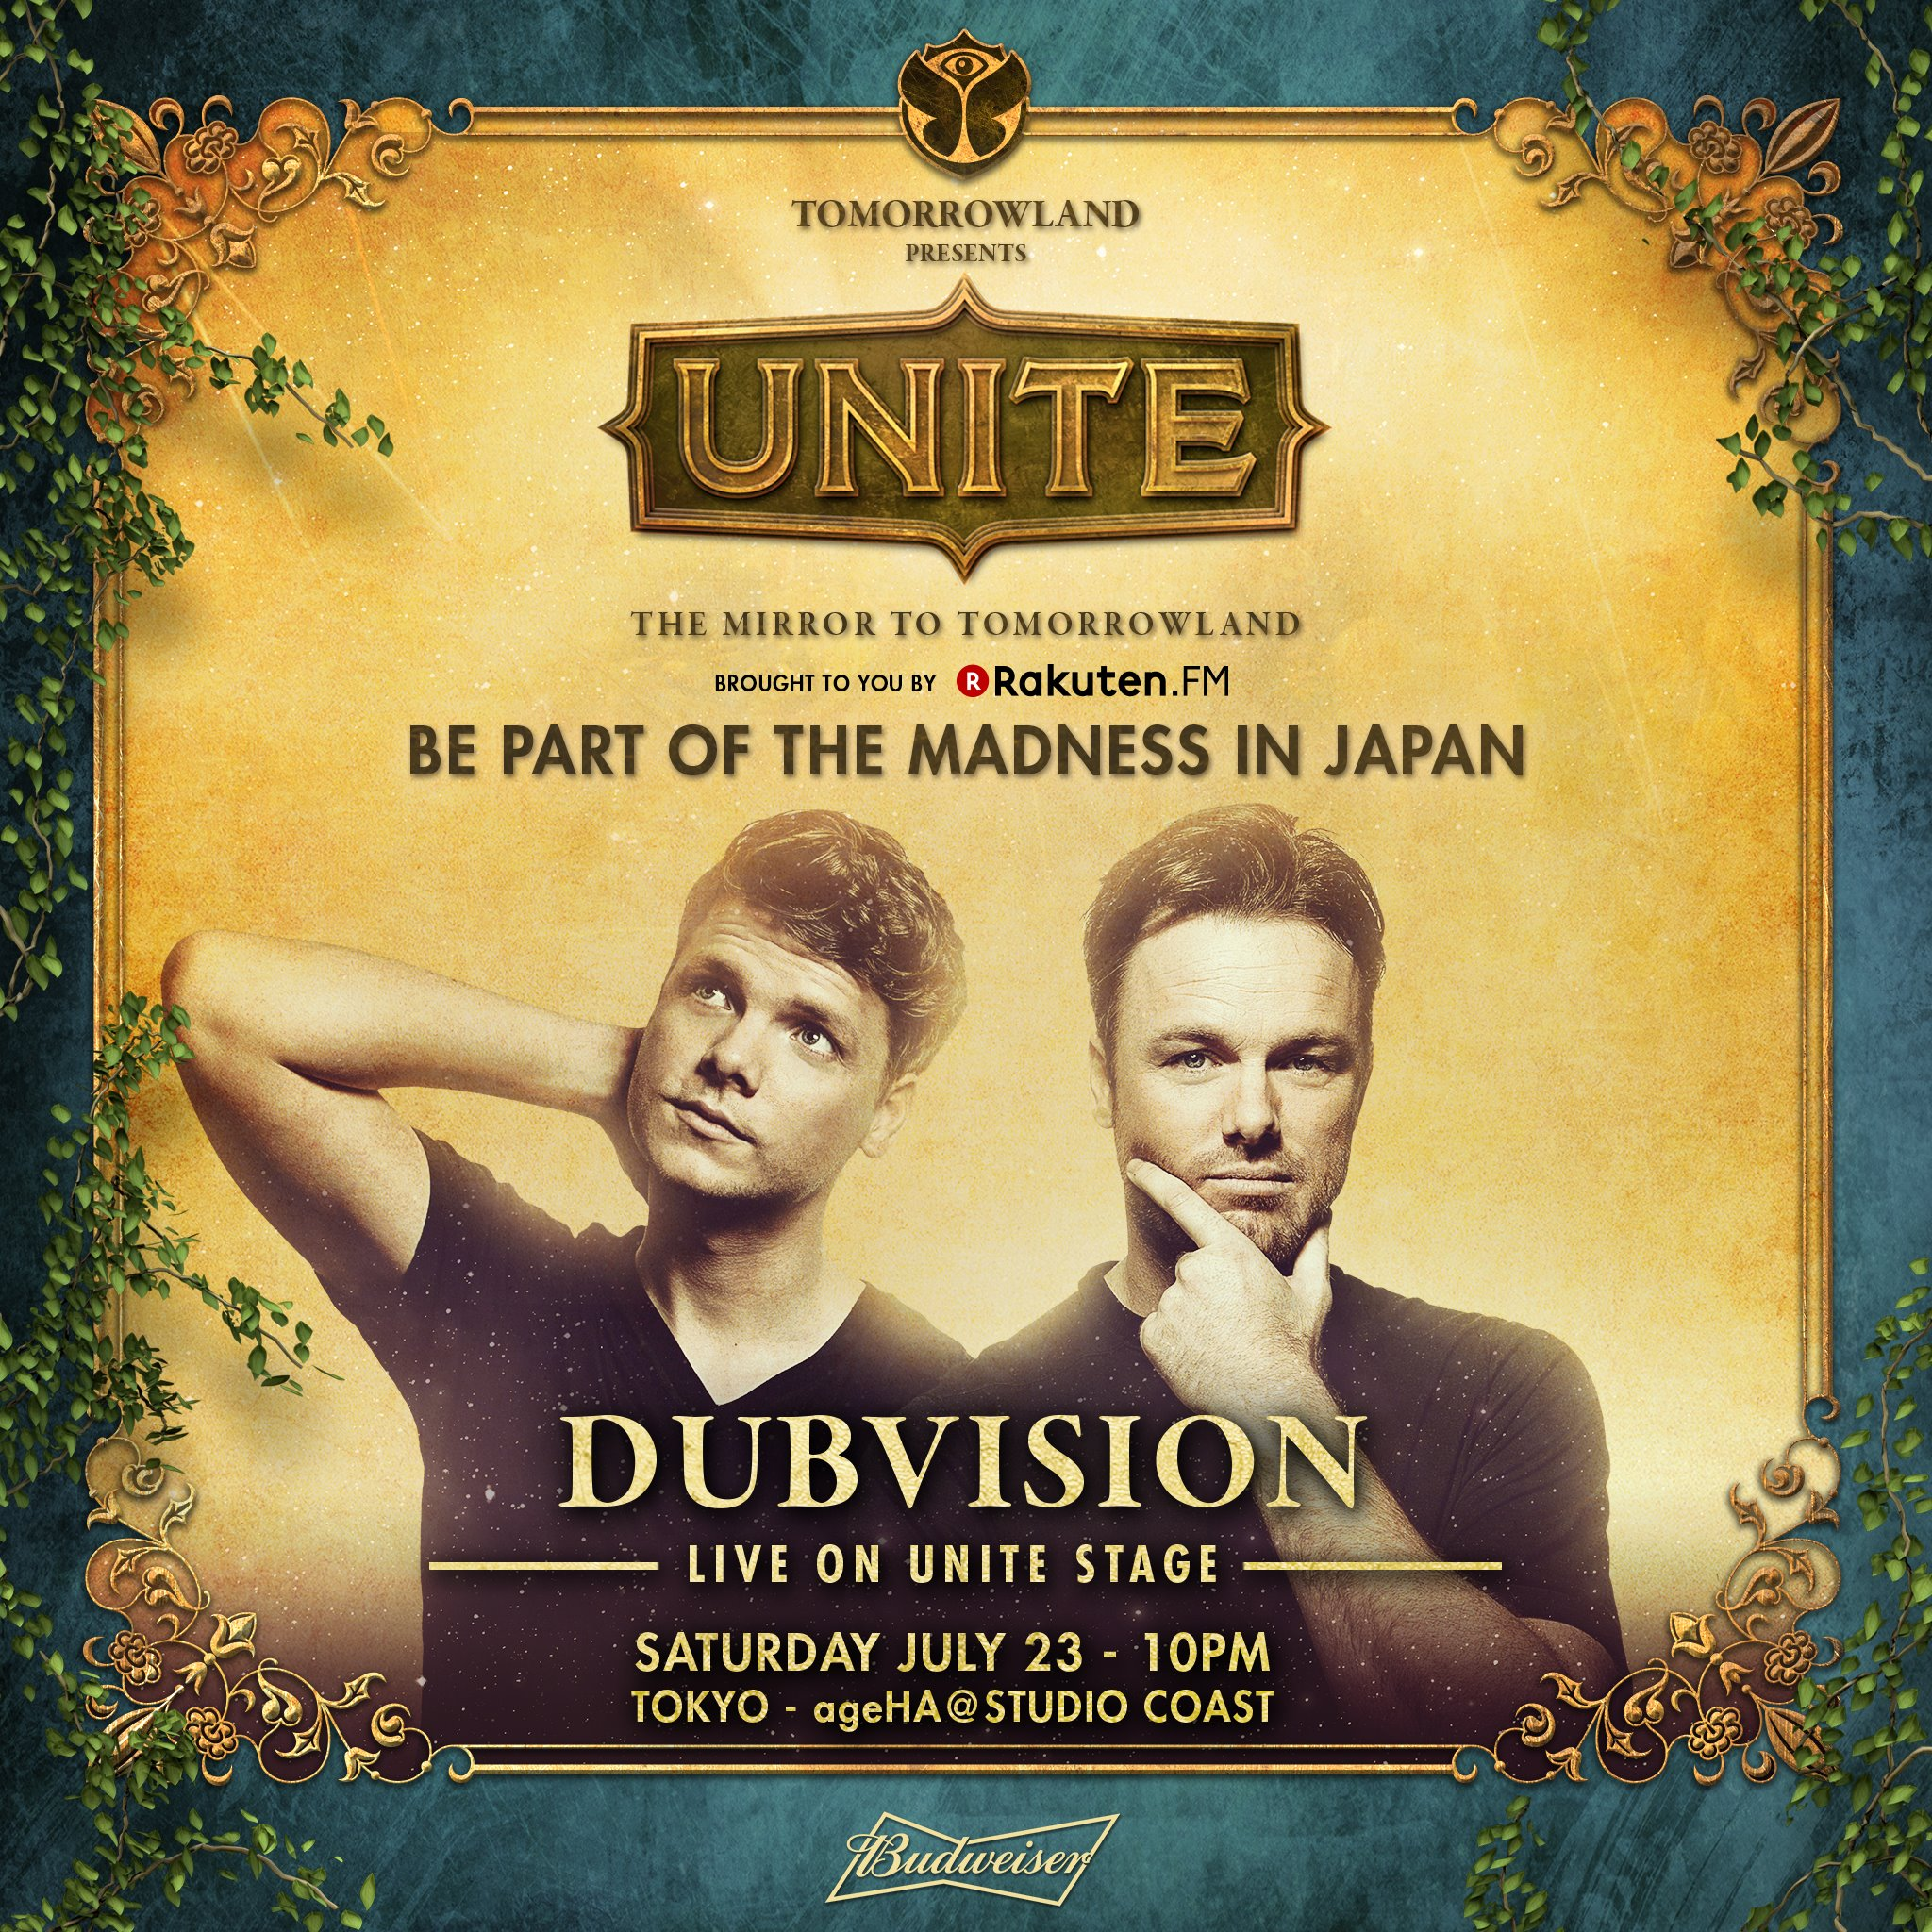 Tomorrowland Presents UNITE - Japan DUBVISION